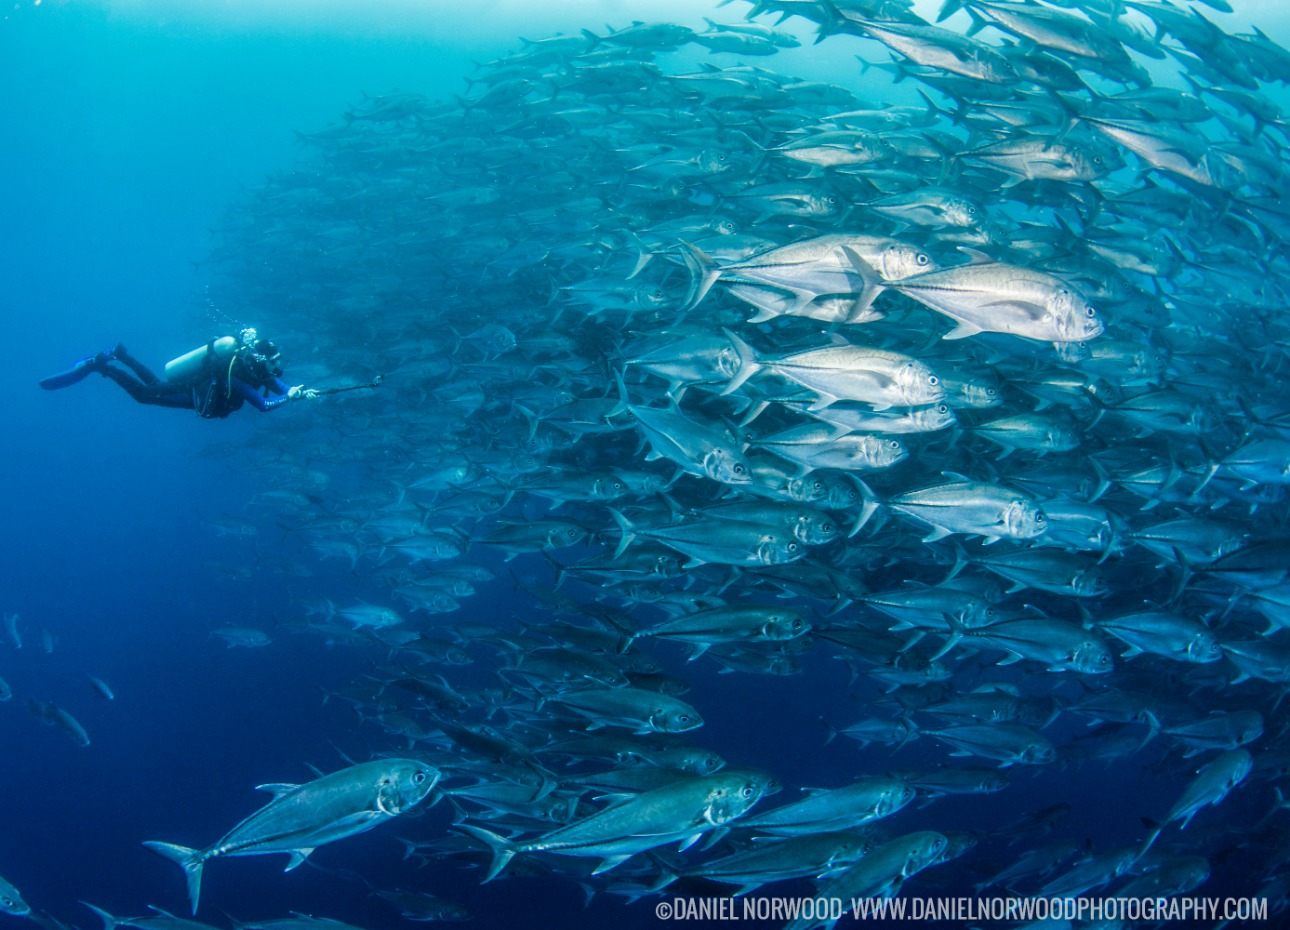 Schooling fish in the Galapagos Islands